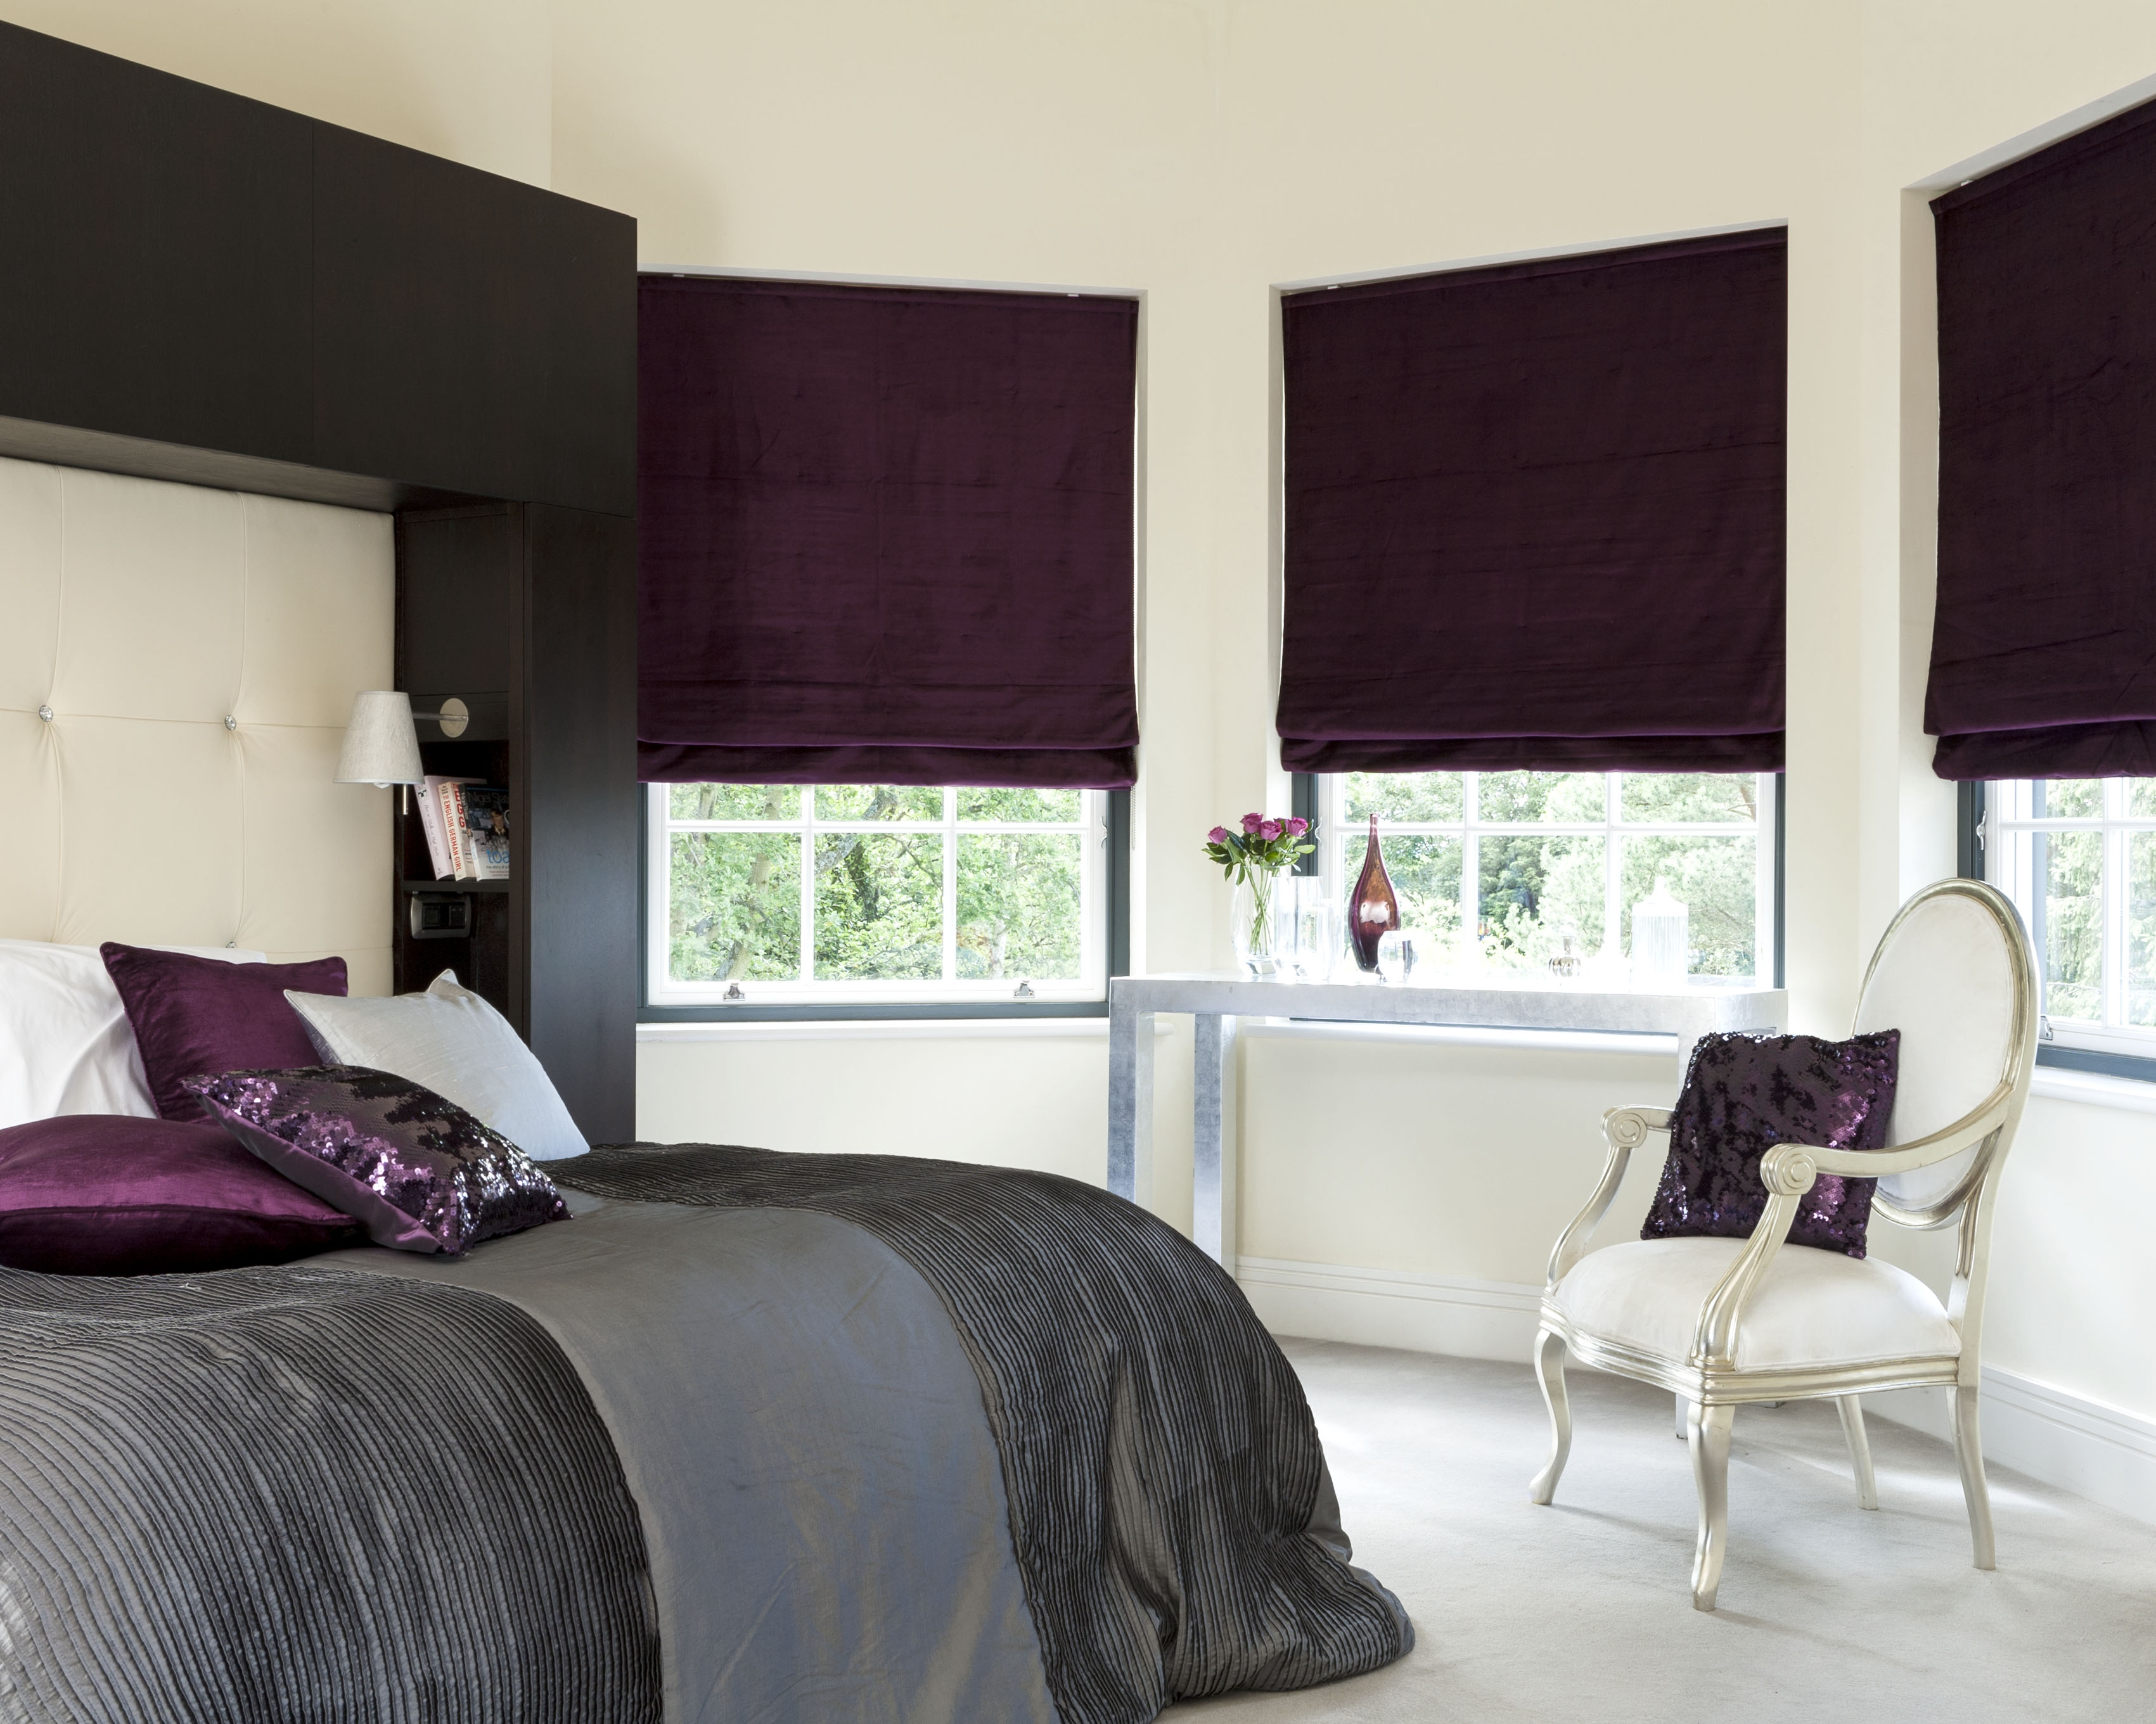 Cheapest Blinds Uk Ltd Cheap Roman Blinds Throughout Black And White Roman Blinds (Image 9 of 15)